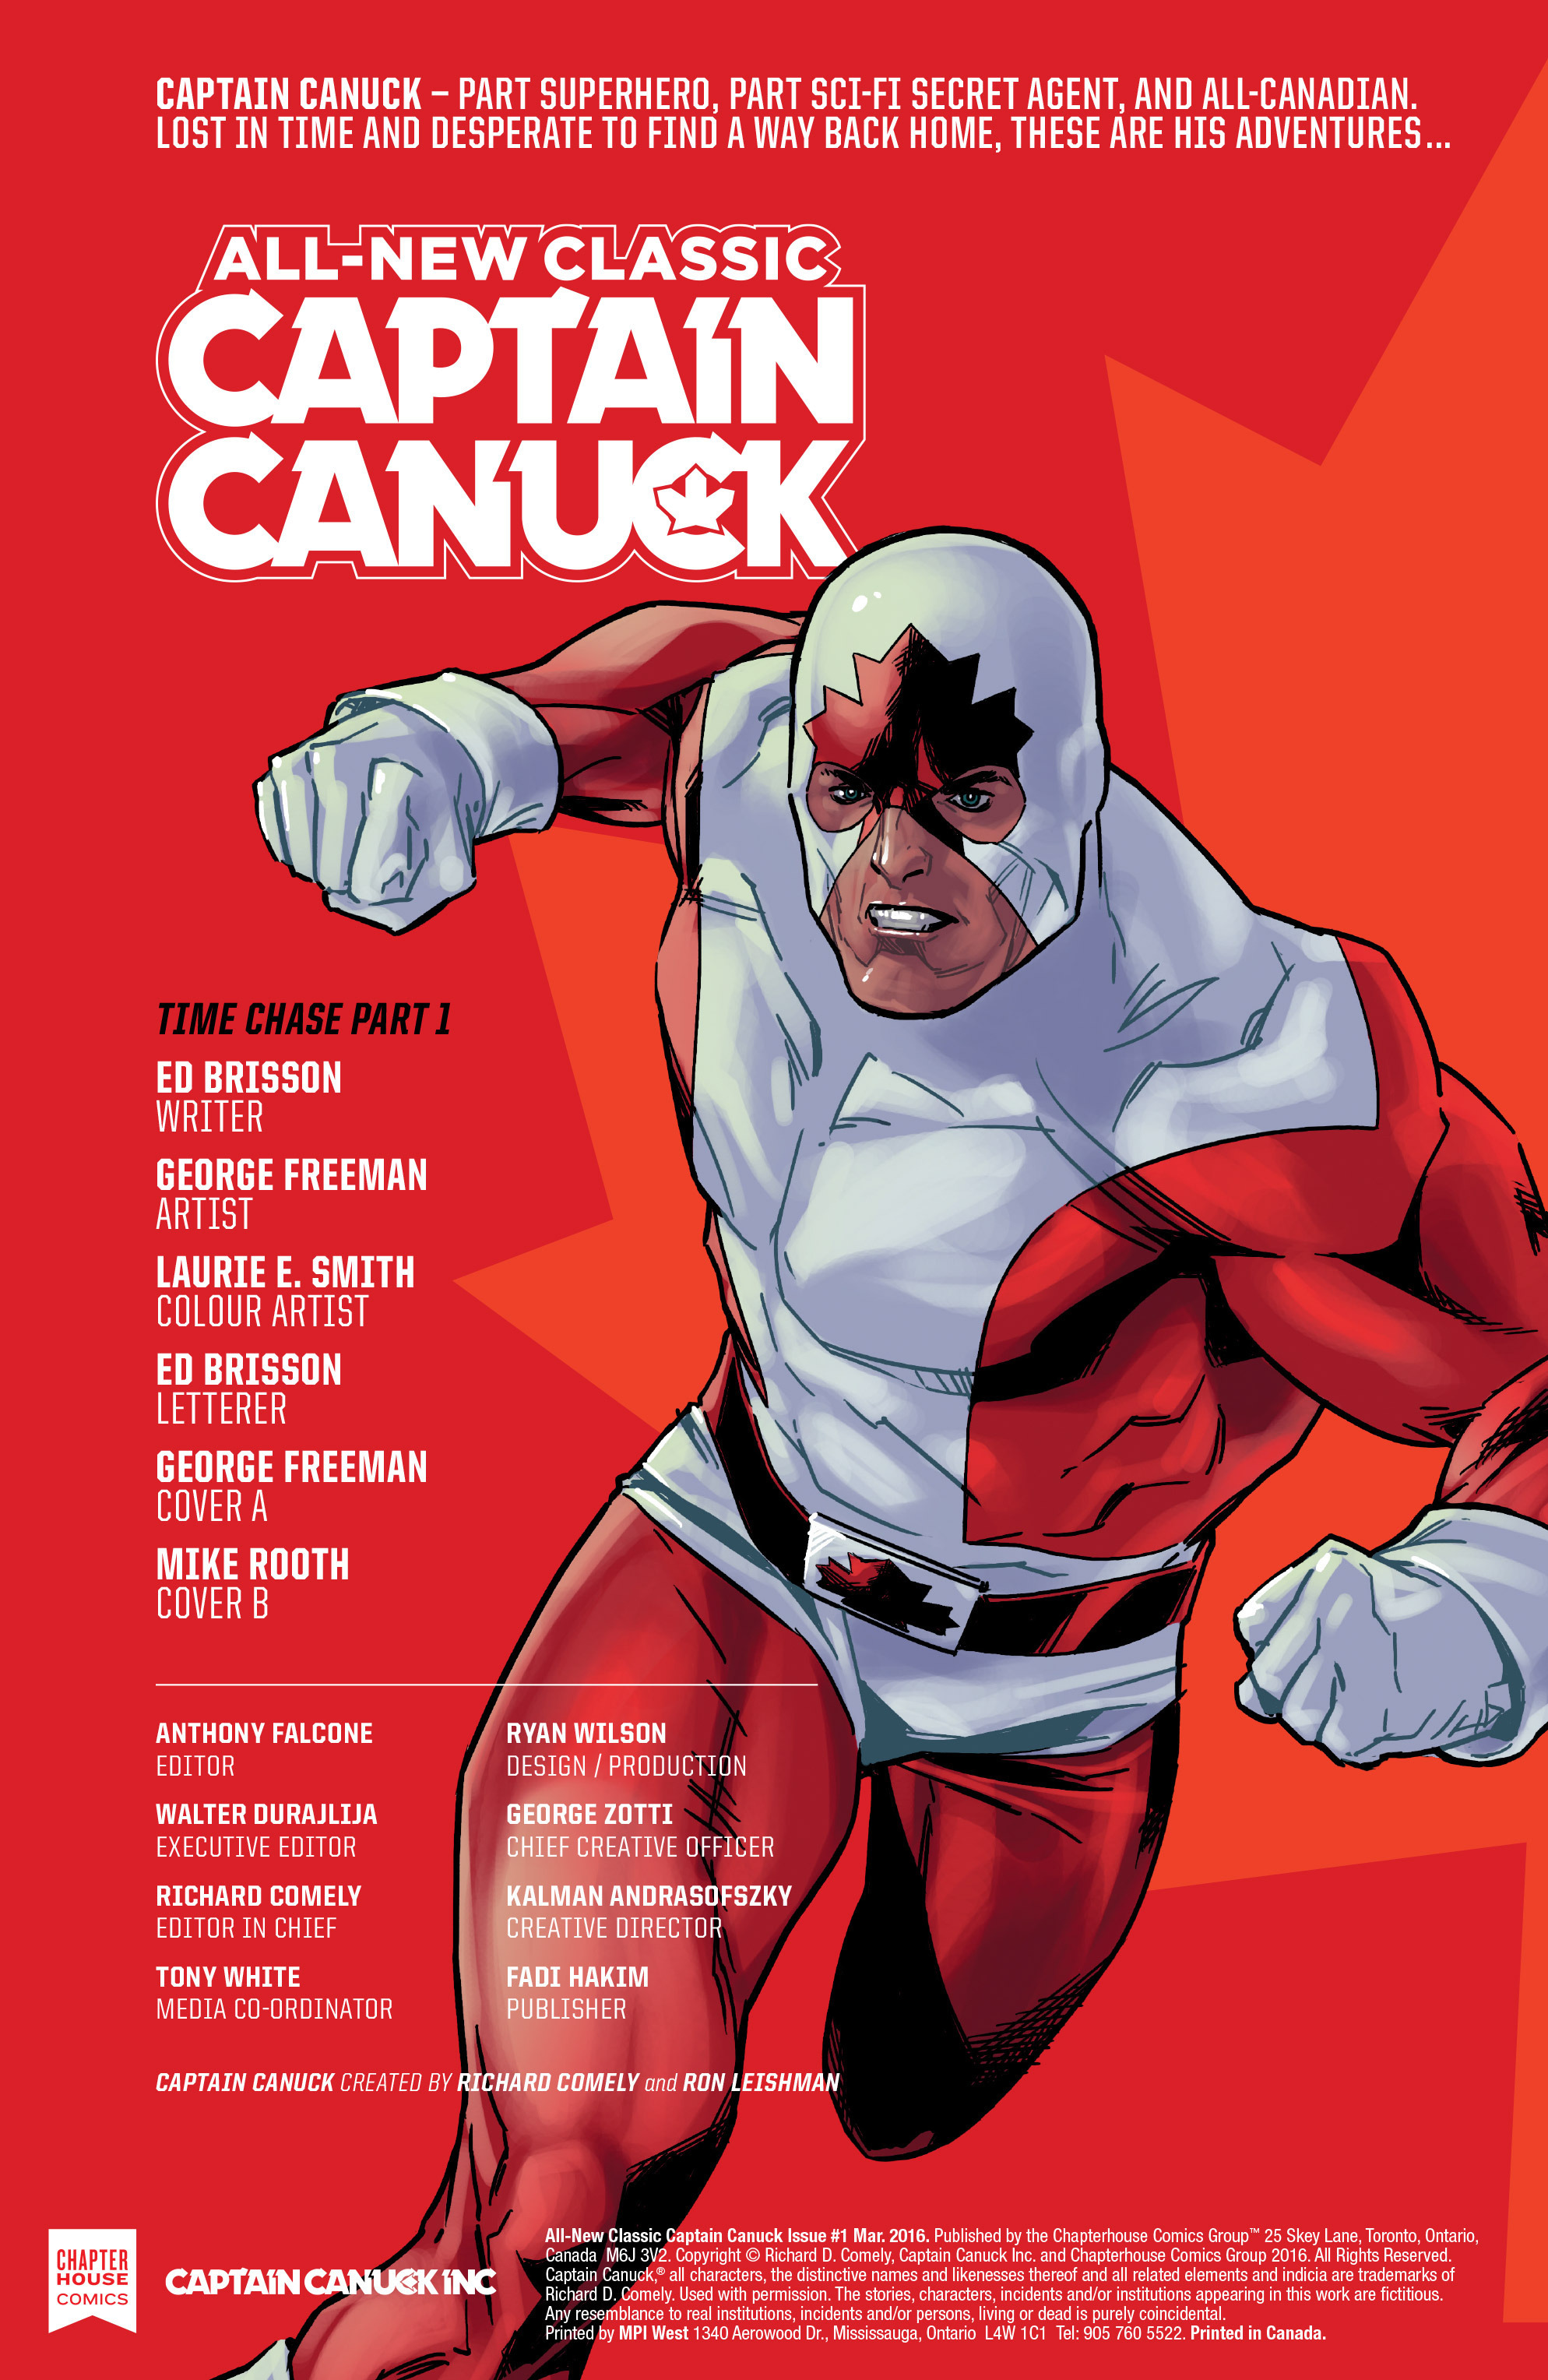 Read online All-New Classic Captain Canuck comic -  Issue #1 - 2